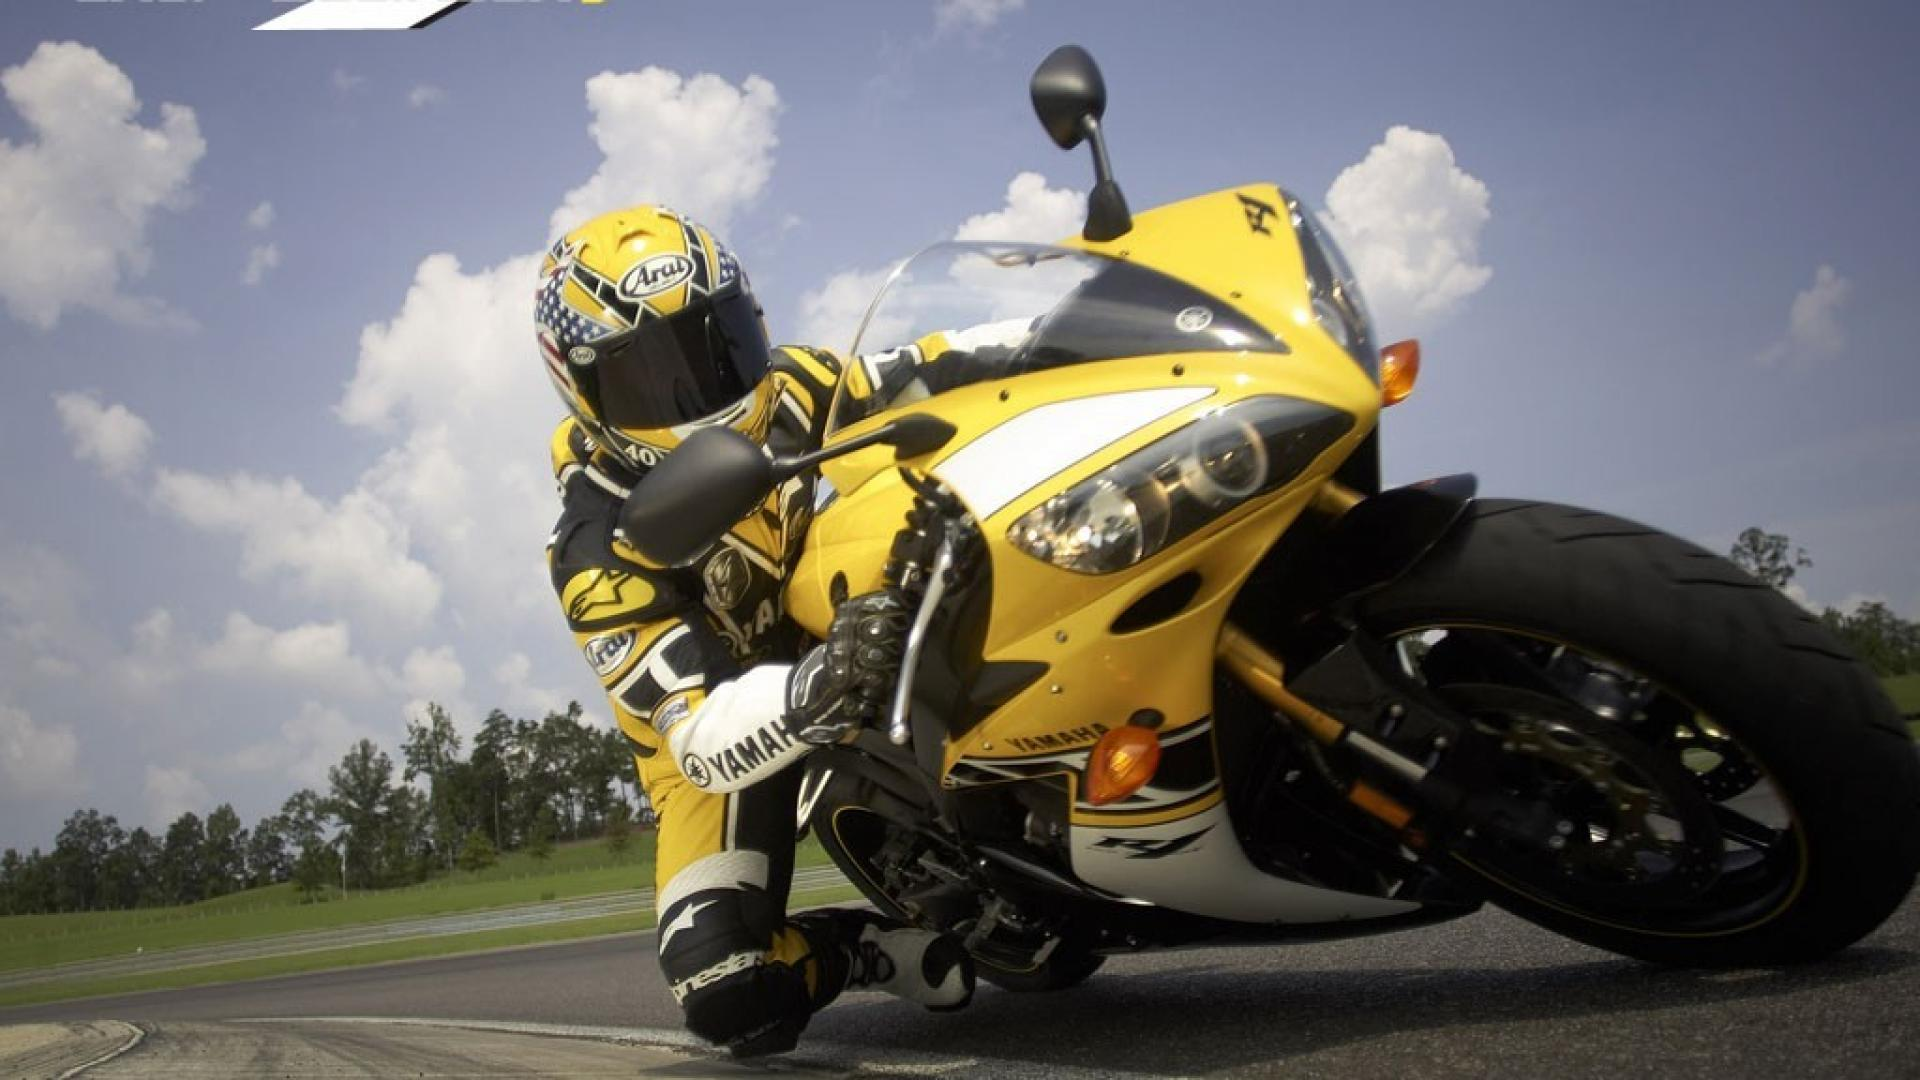 choose your yamaha r1 wallpaper from our top hd gallery for pc desktop tablet iphone and android smartphones